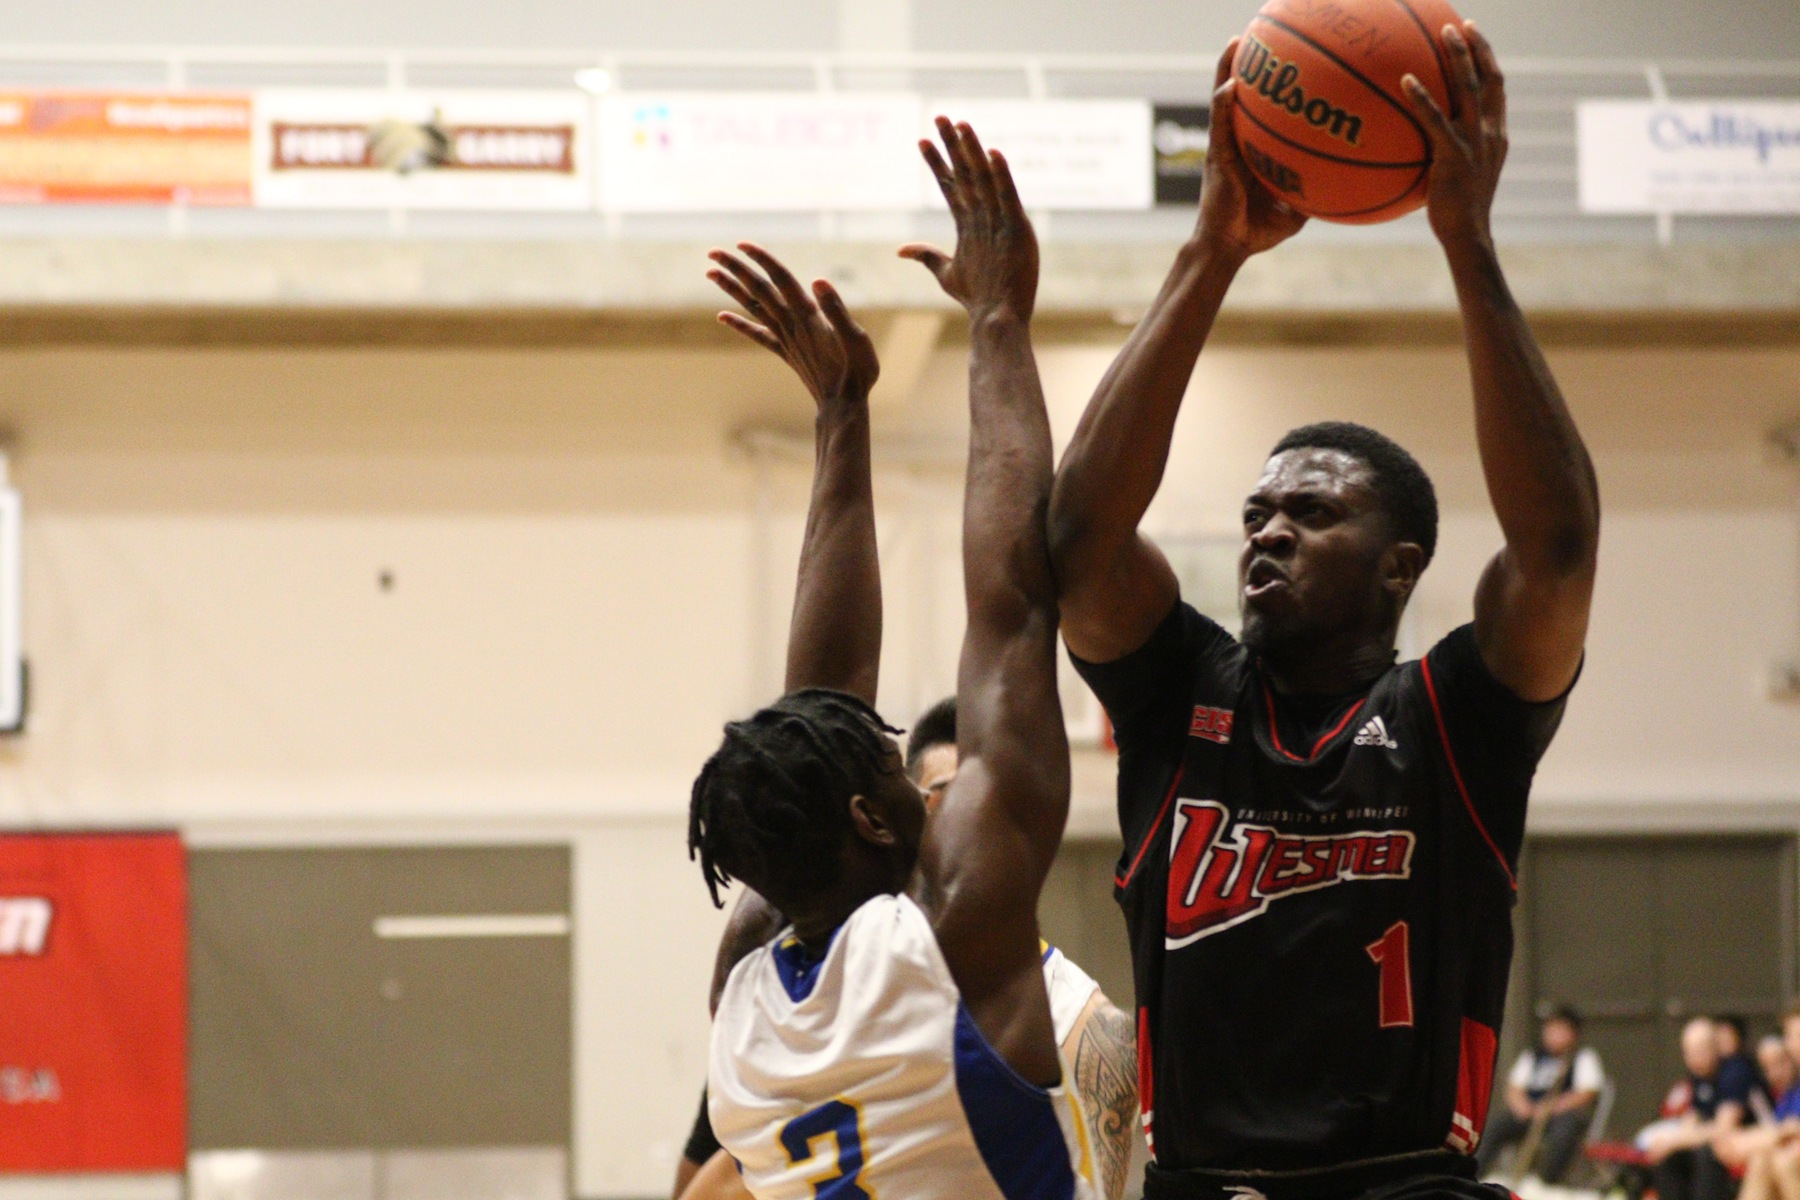 Denzel Lynch-Blair had 14 points and the Wesmen won for the sixth time in seven games Friday night. (David Larkins/Wesmen Athletics)